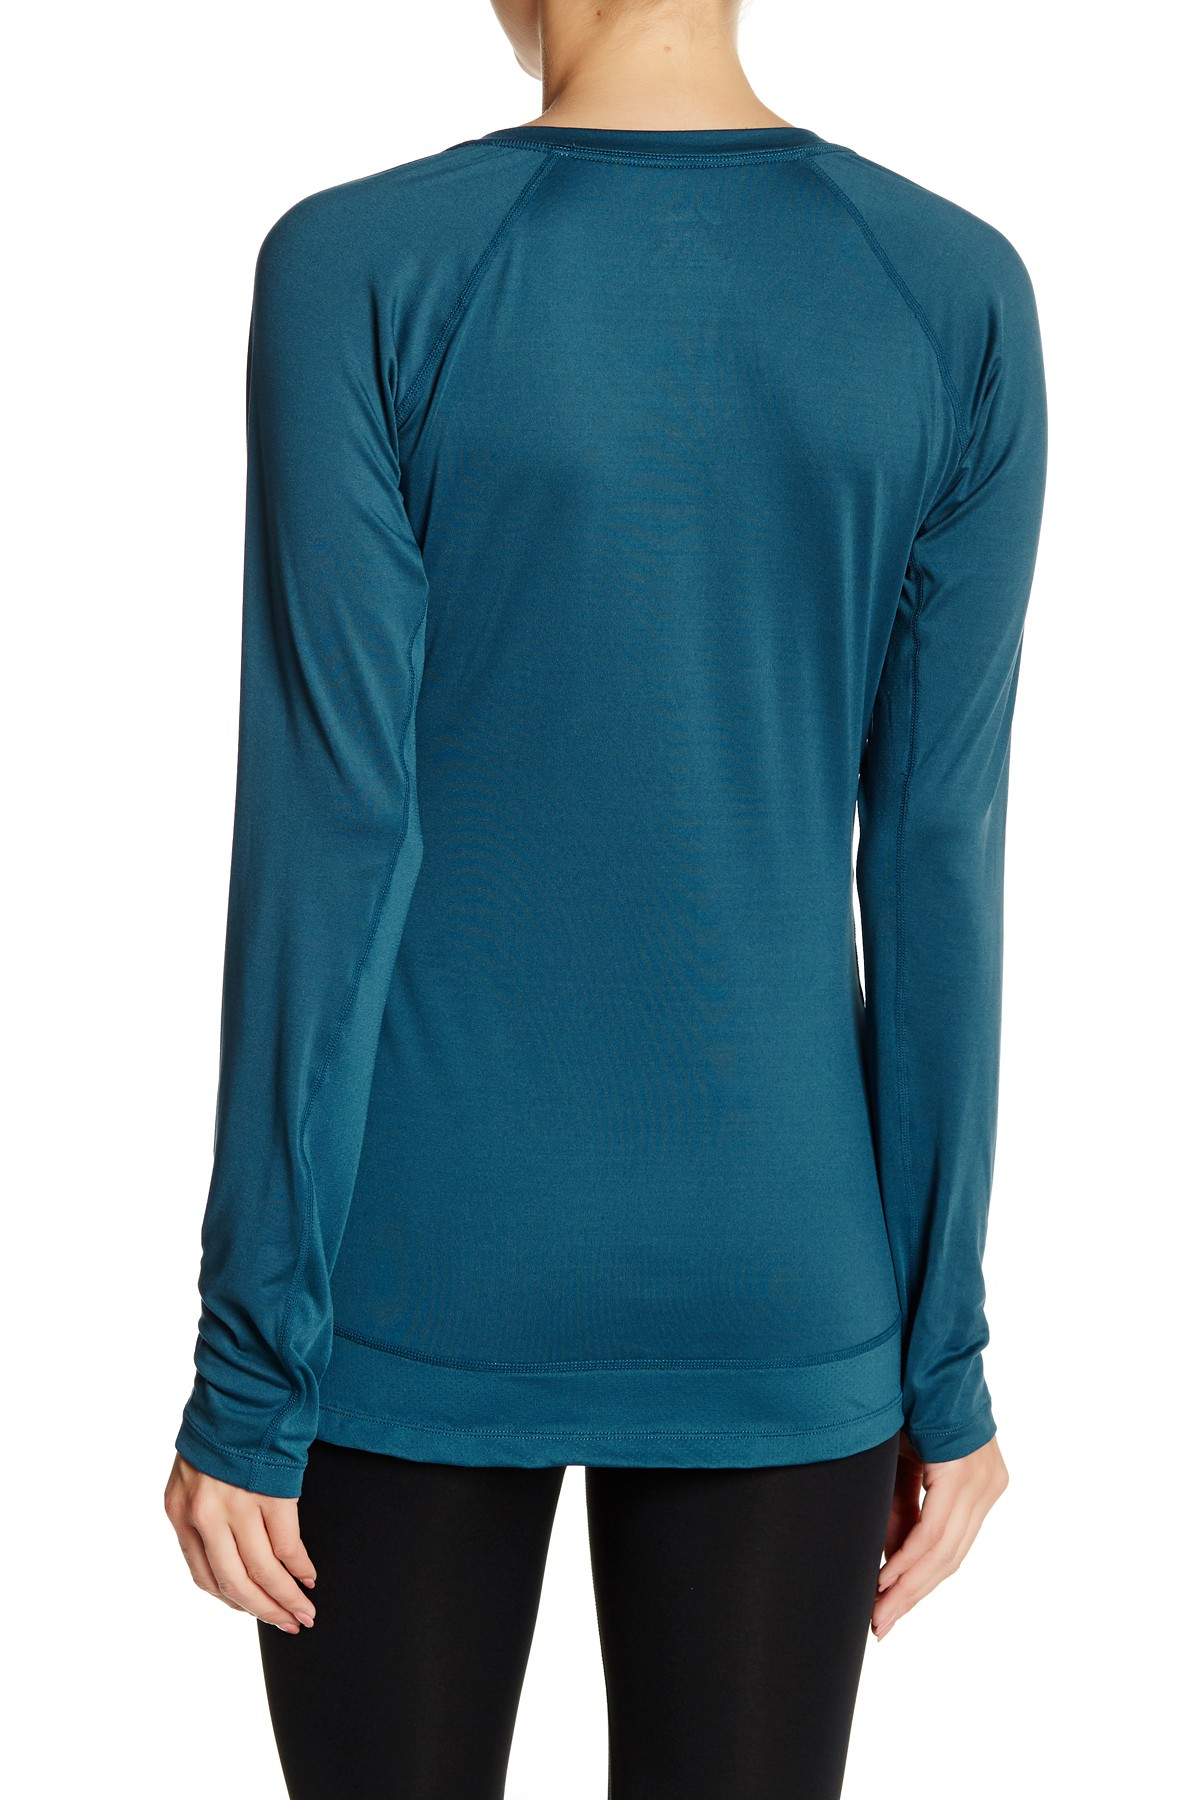 Asics-NEW-Monotone-Women-039-s-Performance-ASX-Dry-Long-Sleeve-Top-42 thumbnail 7